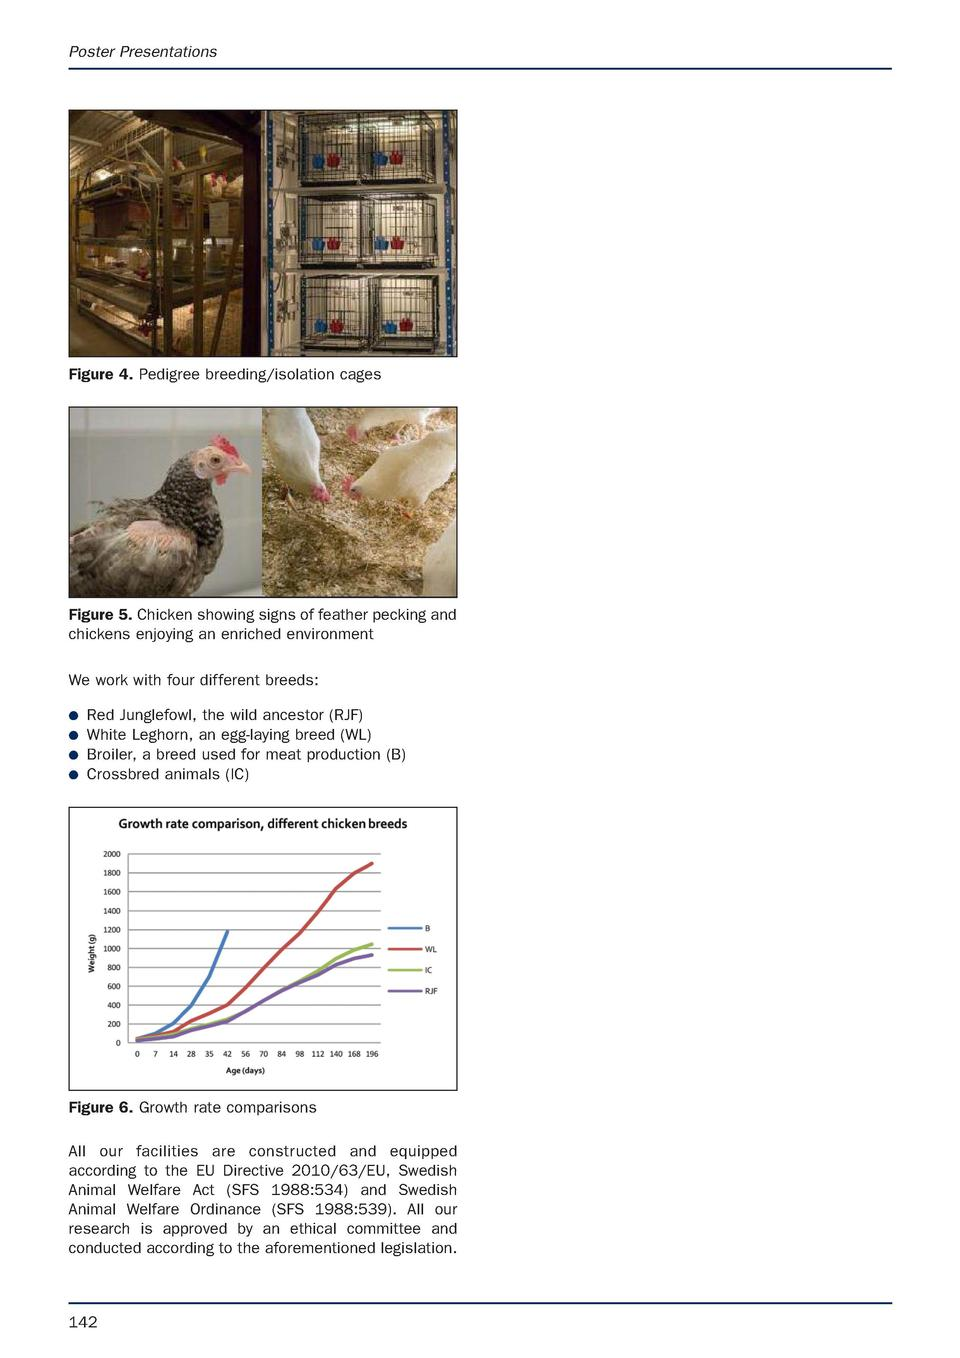 Poster Presentations  Figure 4. Pedigree breeding isolation cages  Figure 5. Chicken showing signs of feather pecking and ...